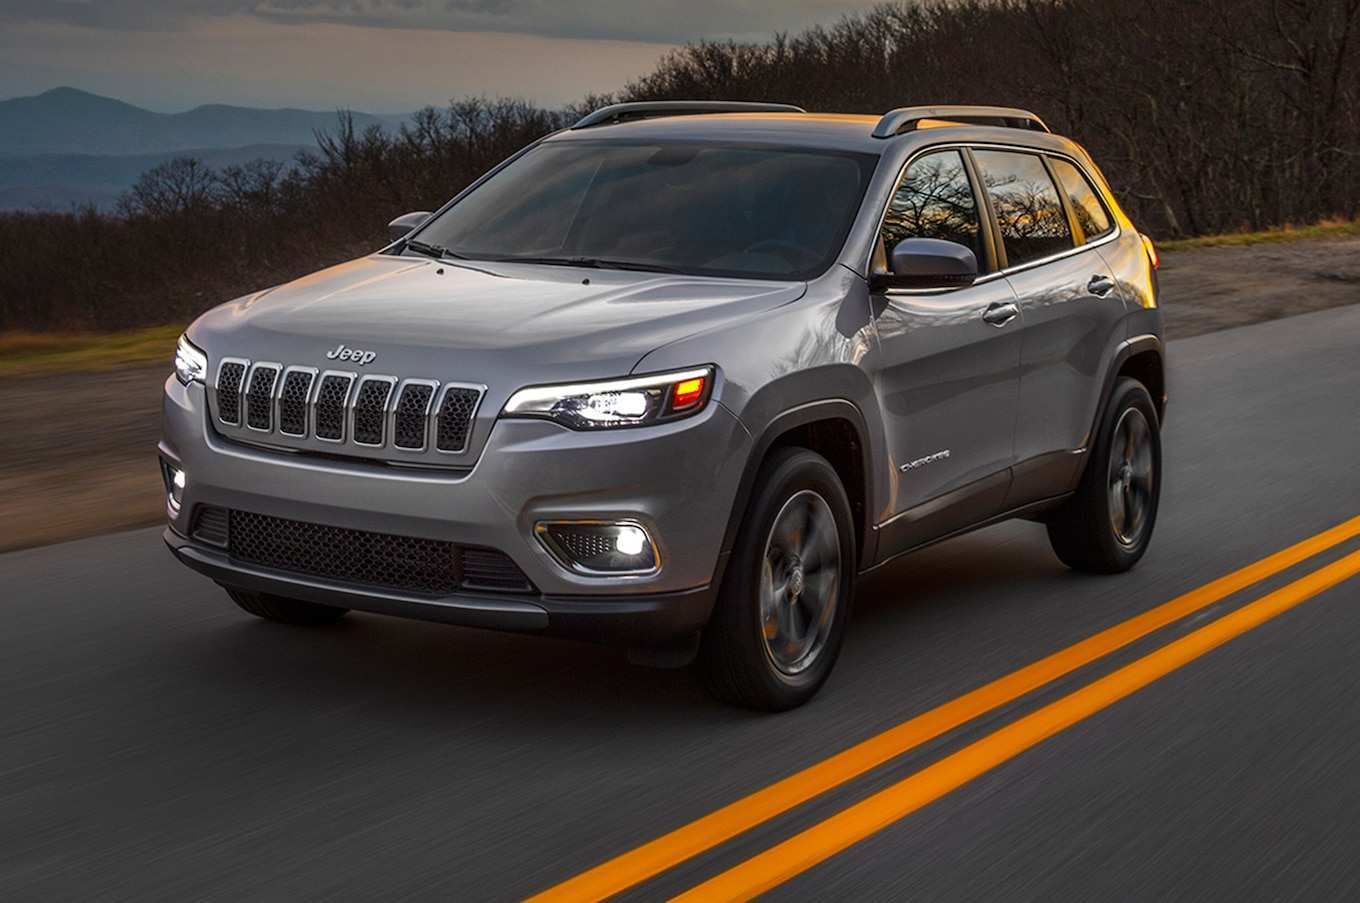 36 Gallery of 2019 Jeep Latitude Pictures with 2019 Jeep Latitude